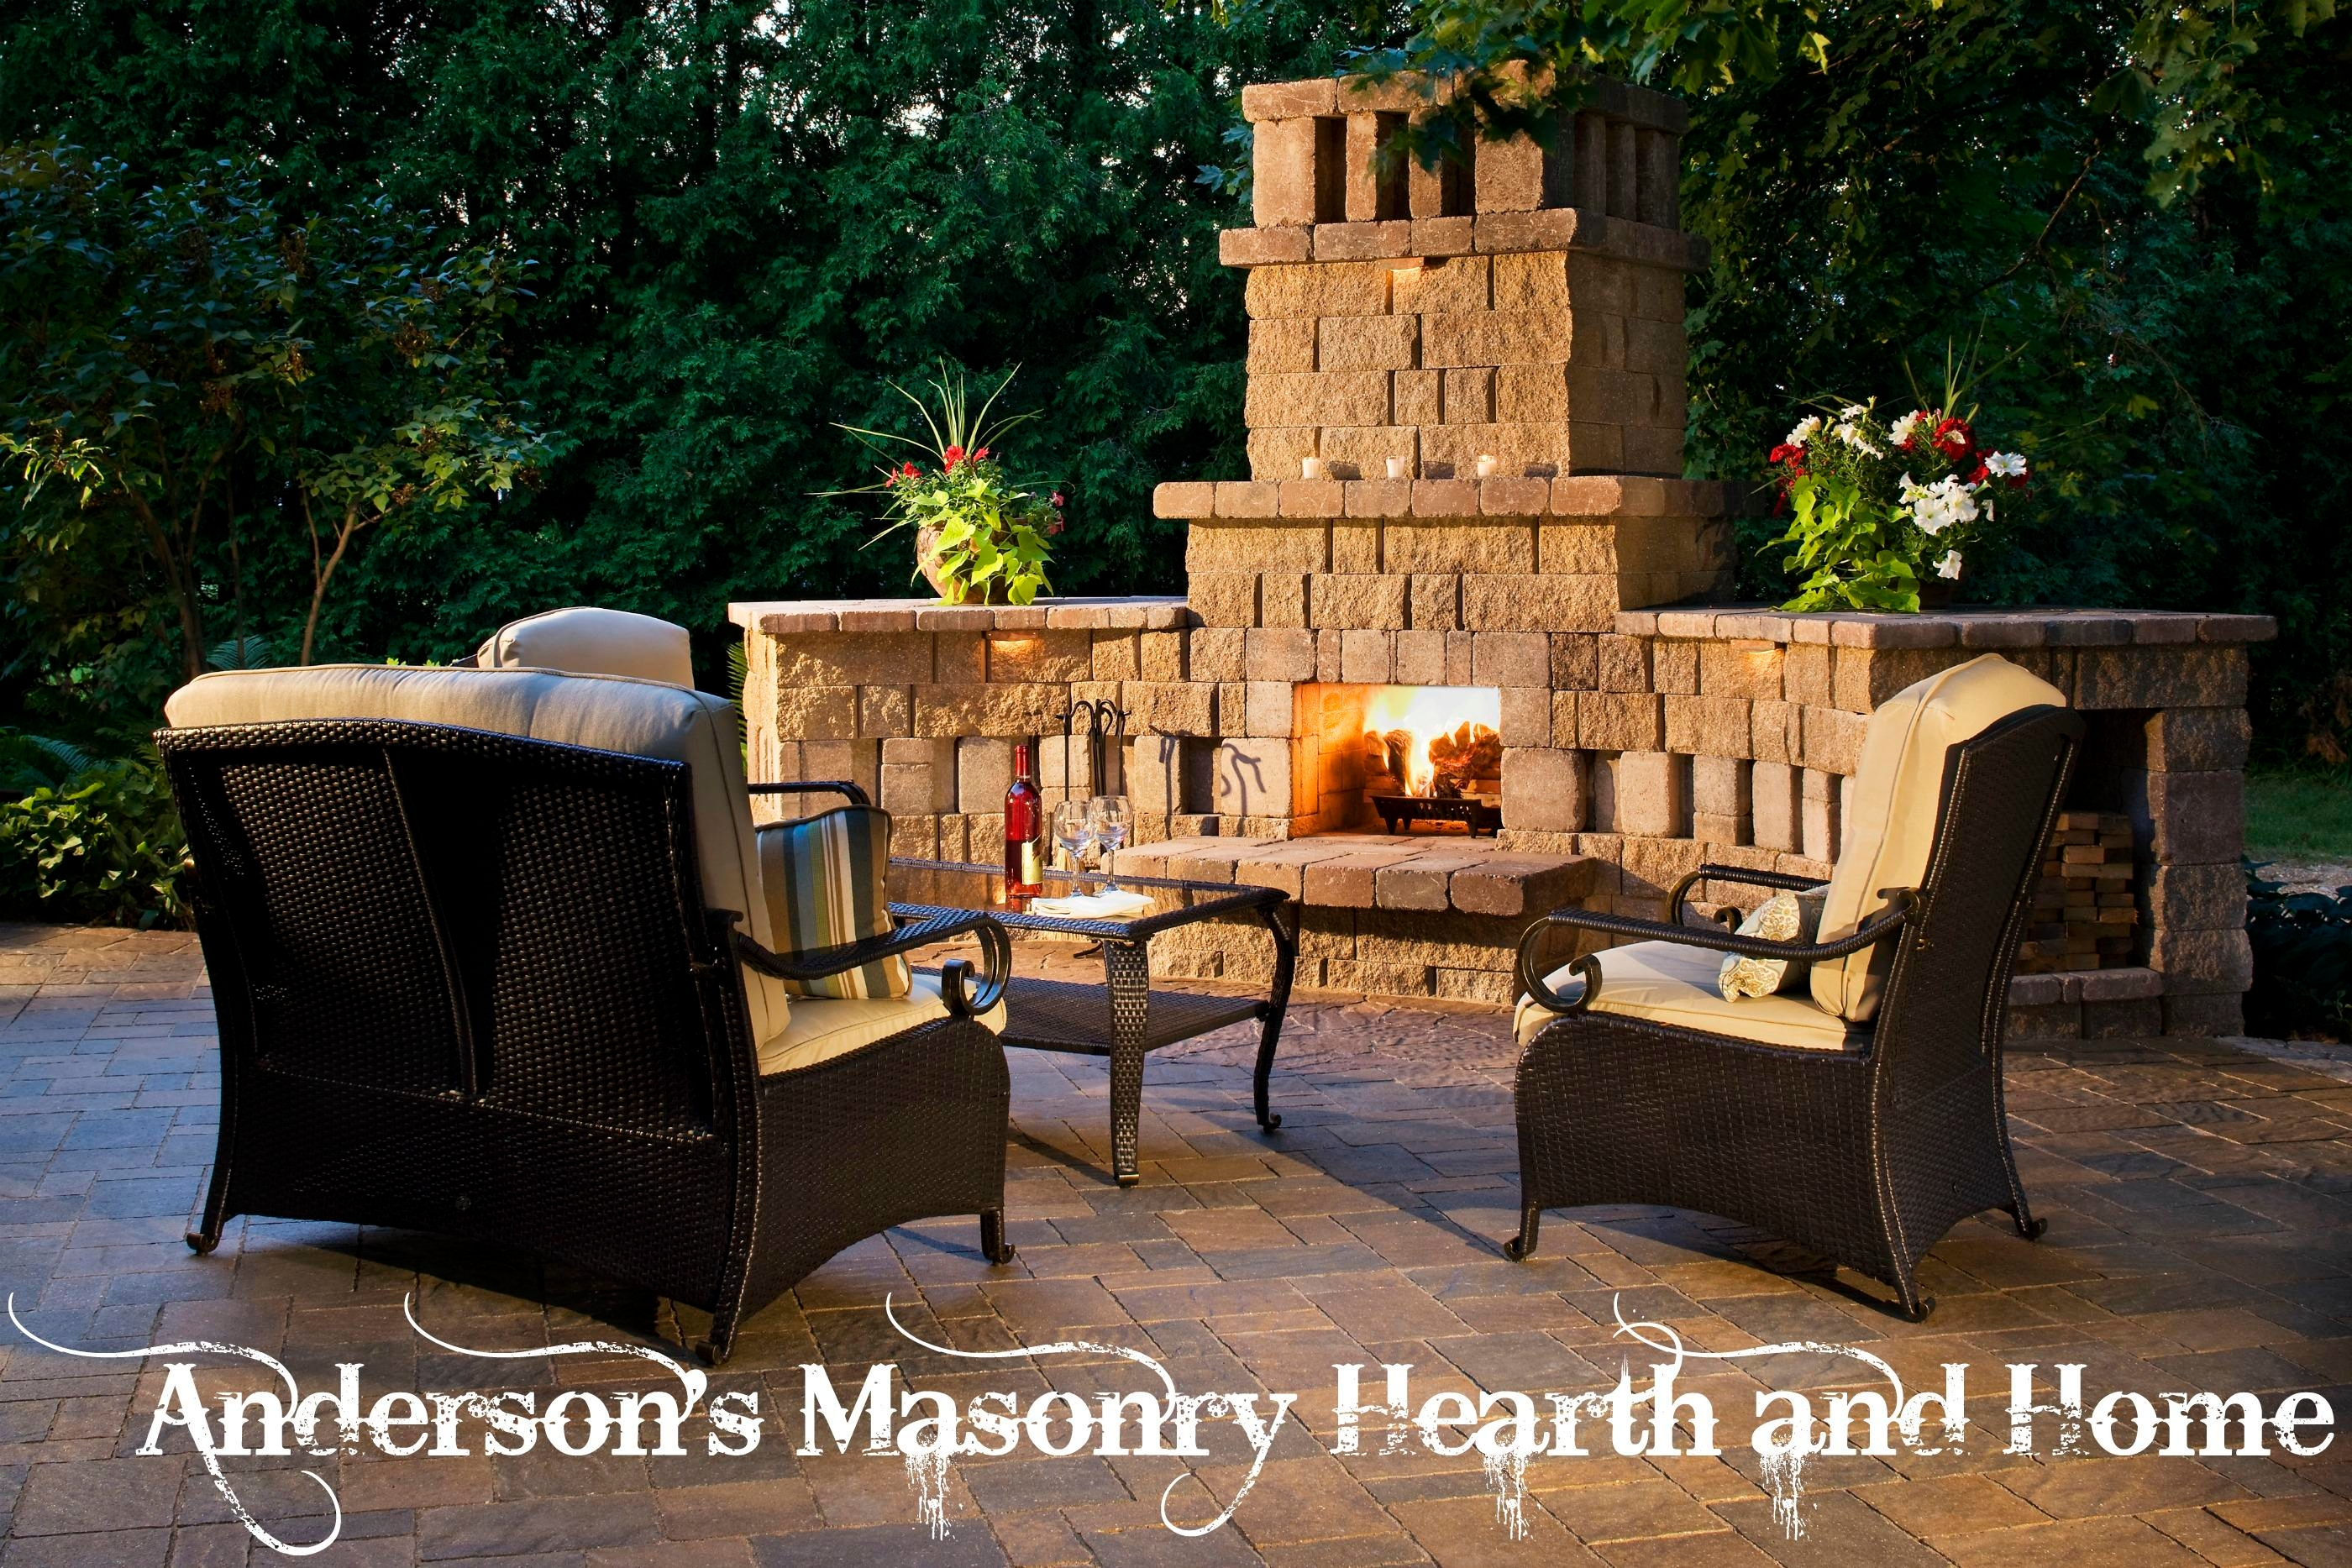 Anderson's Masonry Hearth and Home